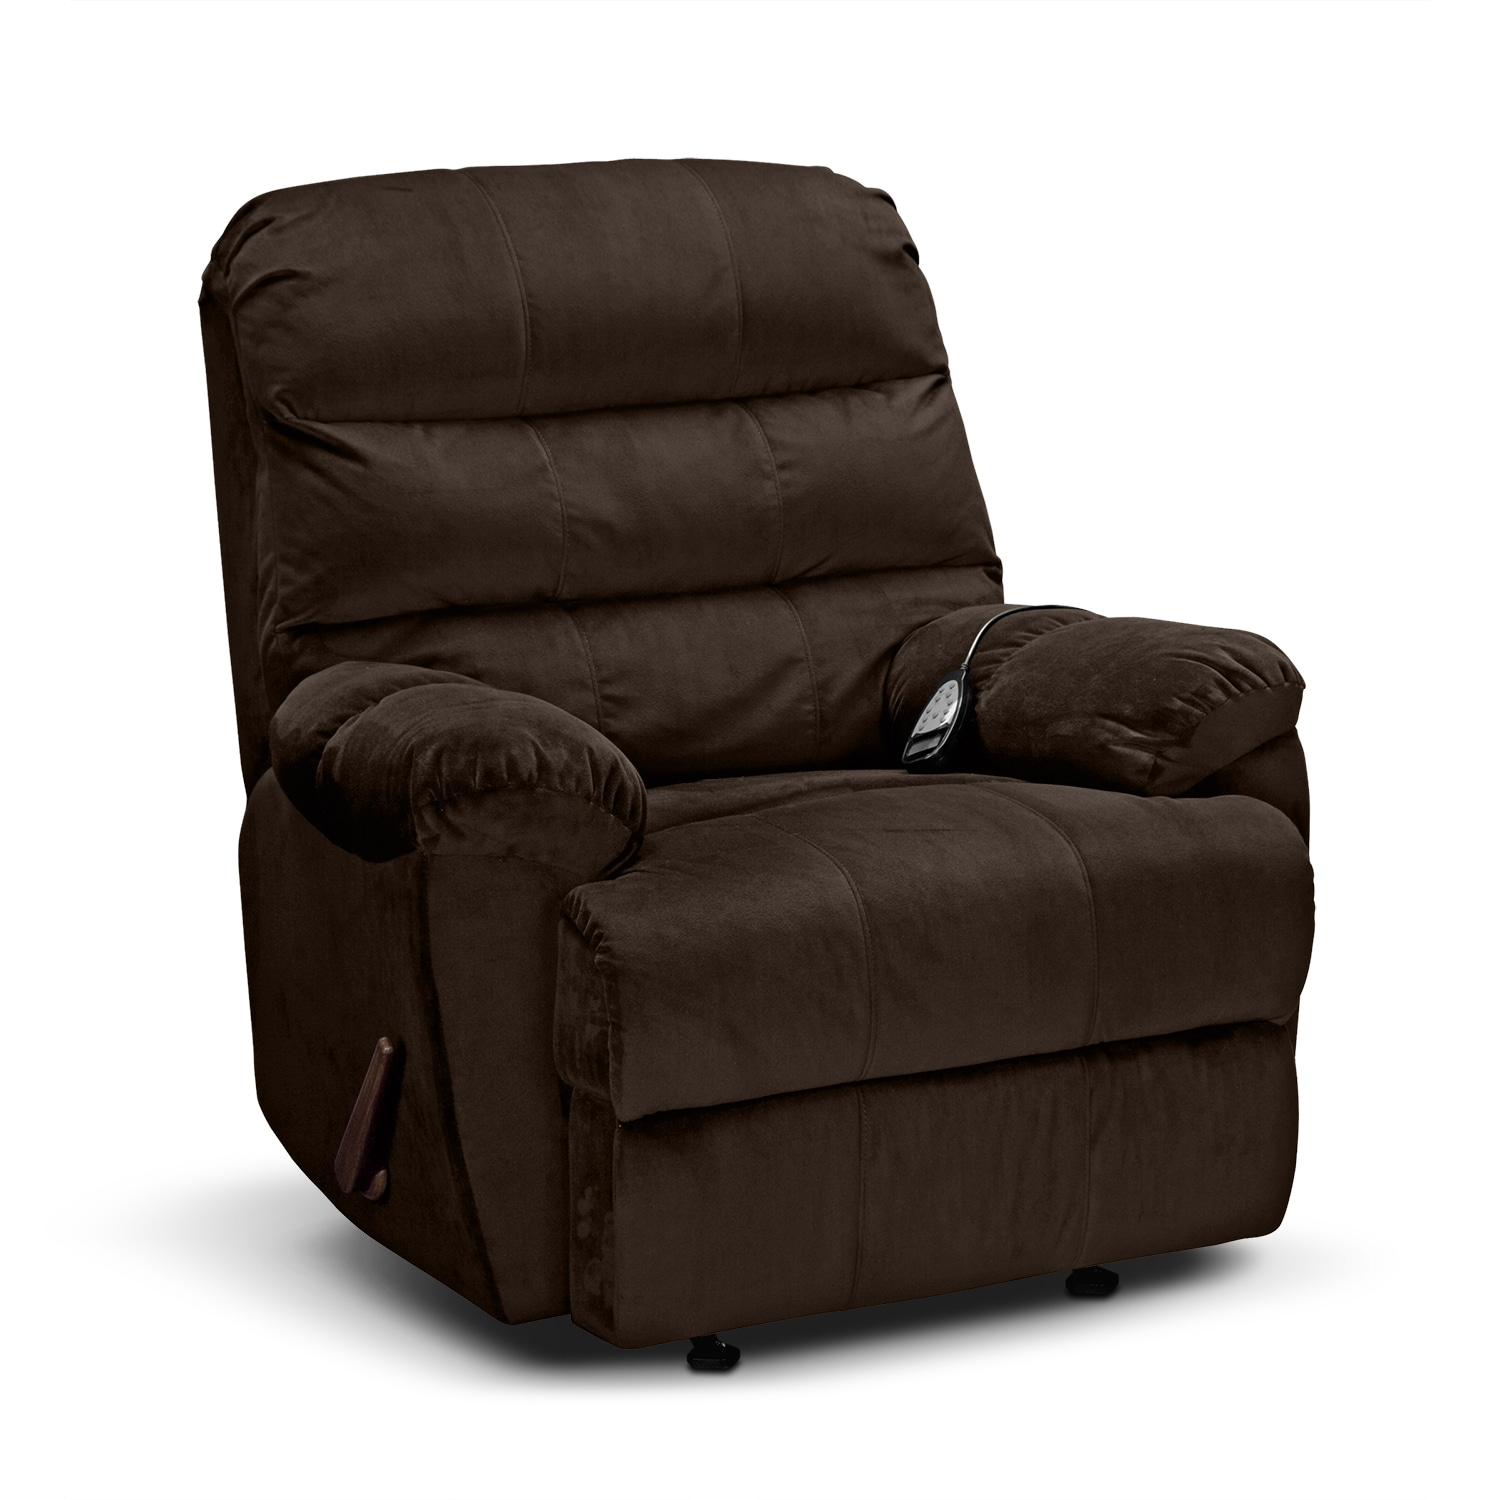 Atlantic Massage Rocker Recliner Chocolate